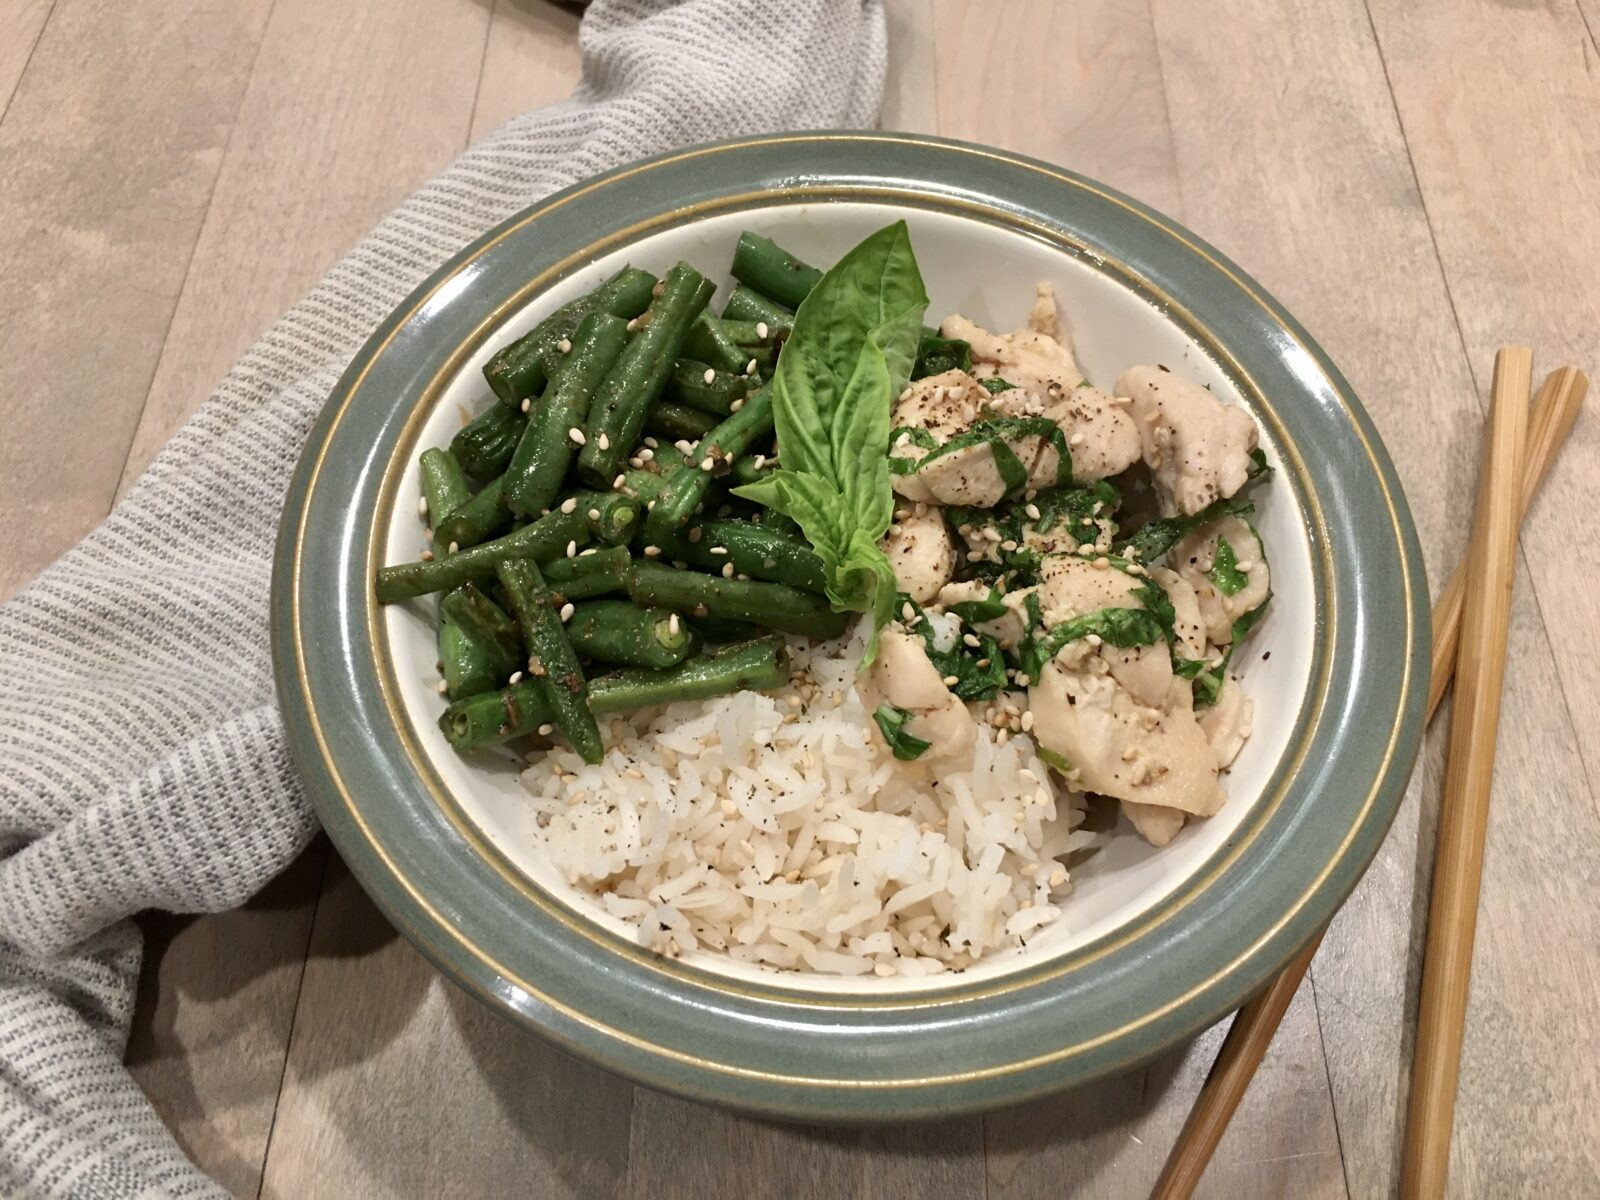 Chile, Basil & Chicken Stir-fry served in a bowl with a towel and chop sticks